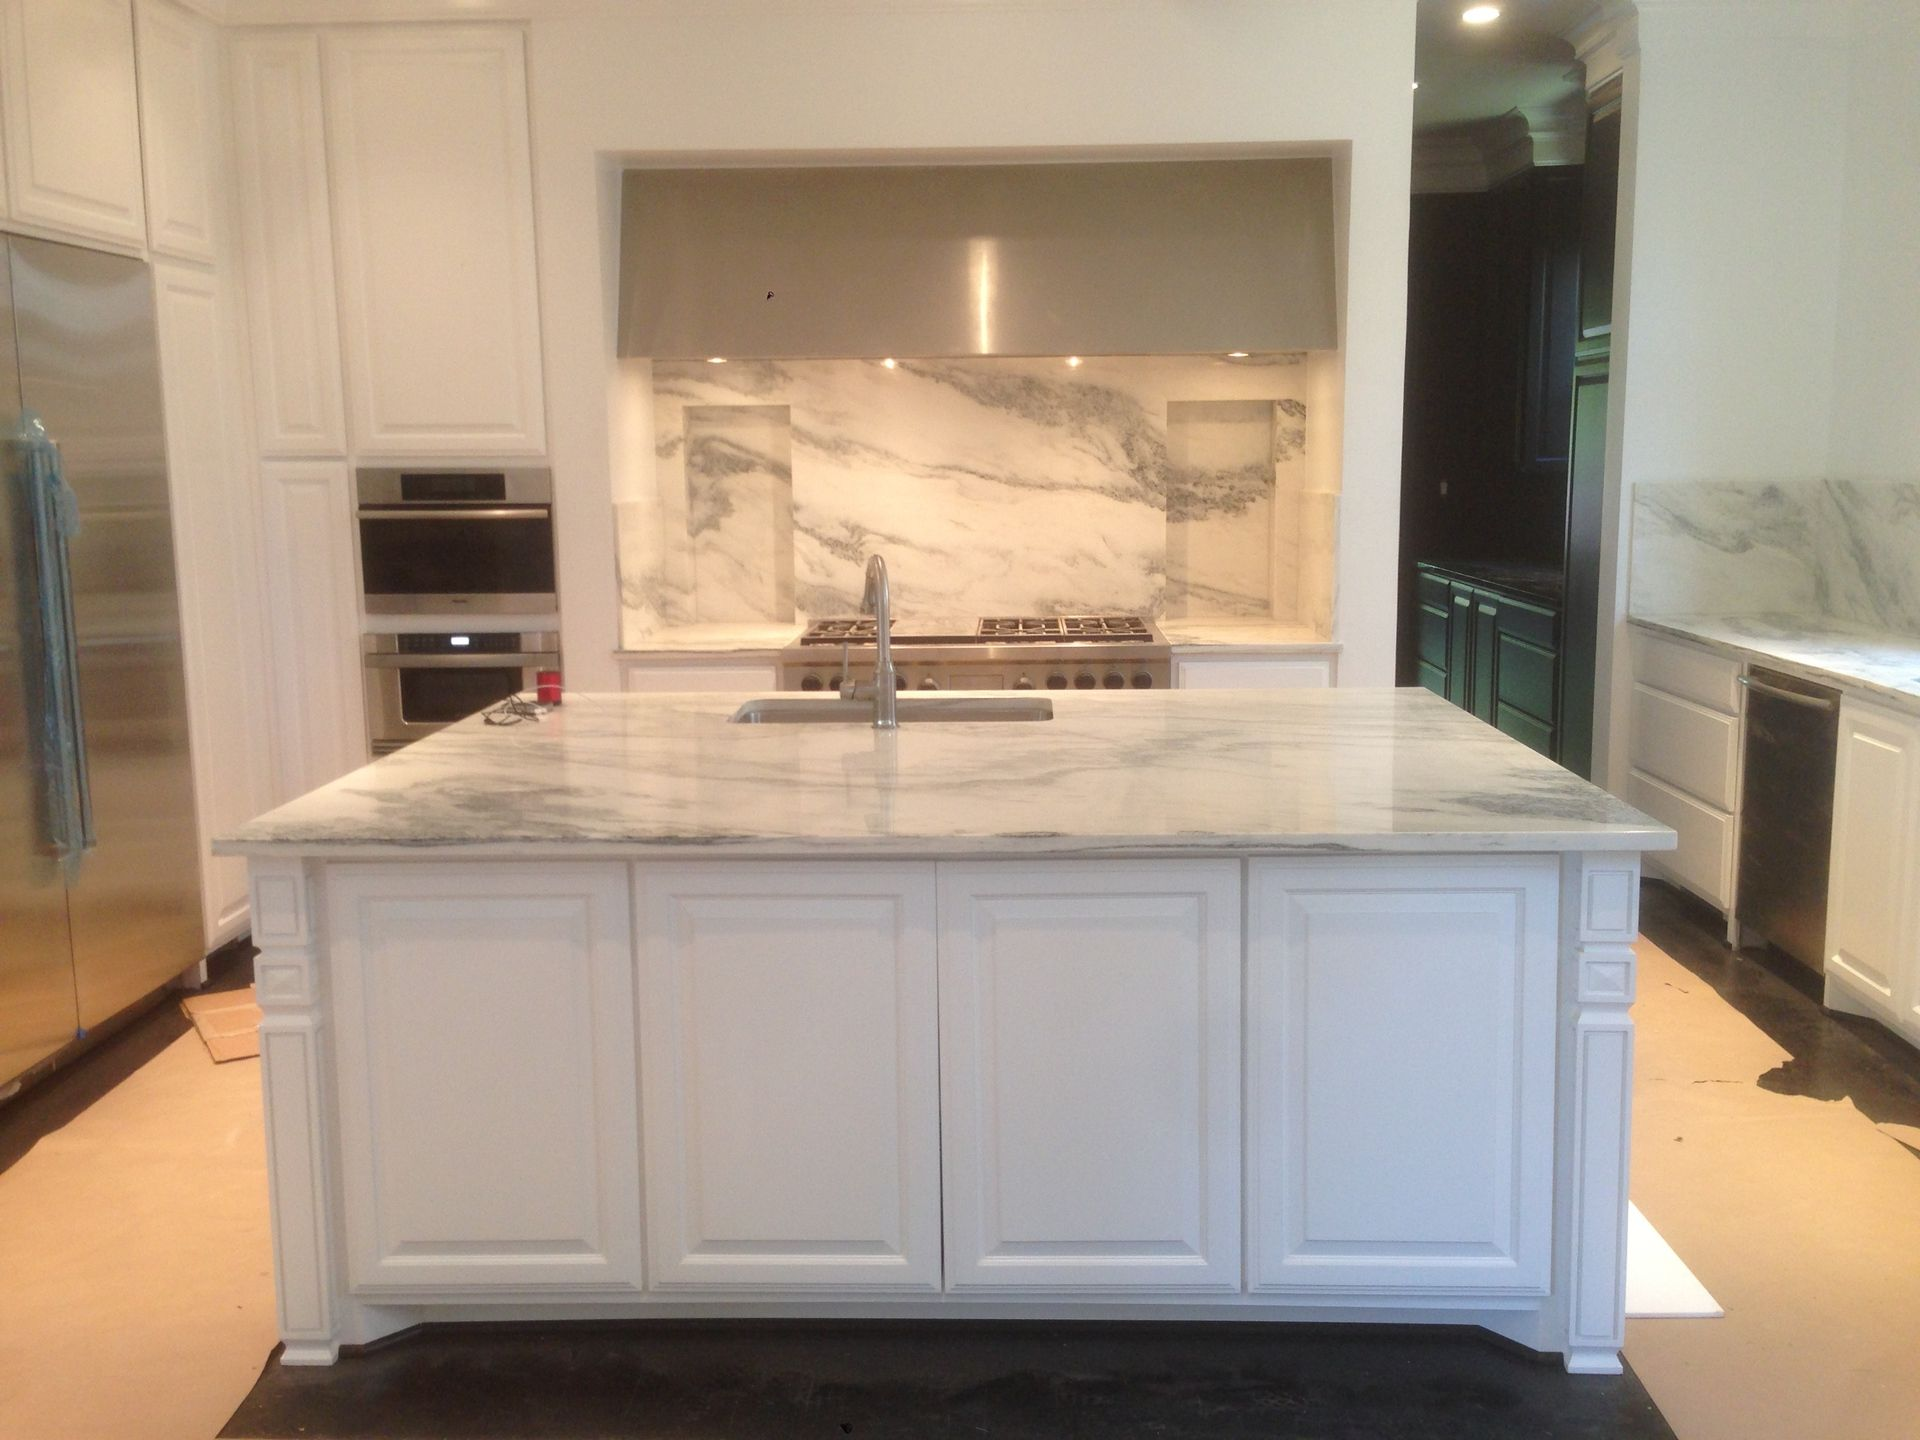 Kitchen Backsplash Height honed danby marble (arabescato-montclair or mountain white) island